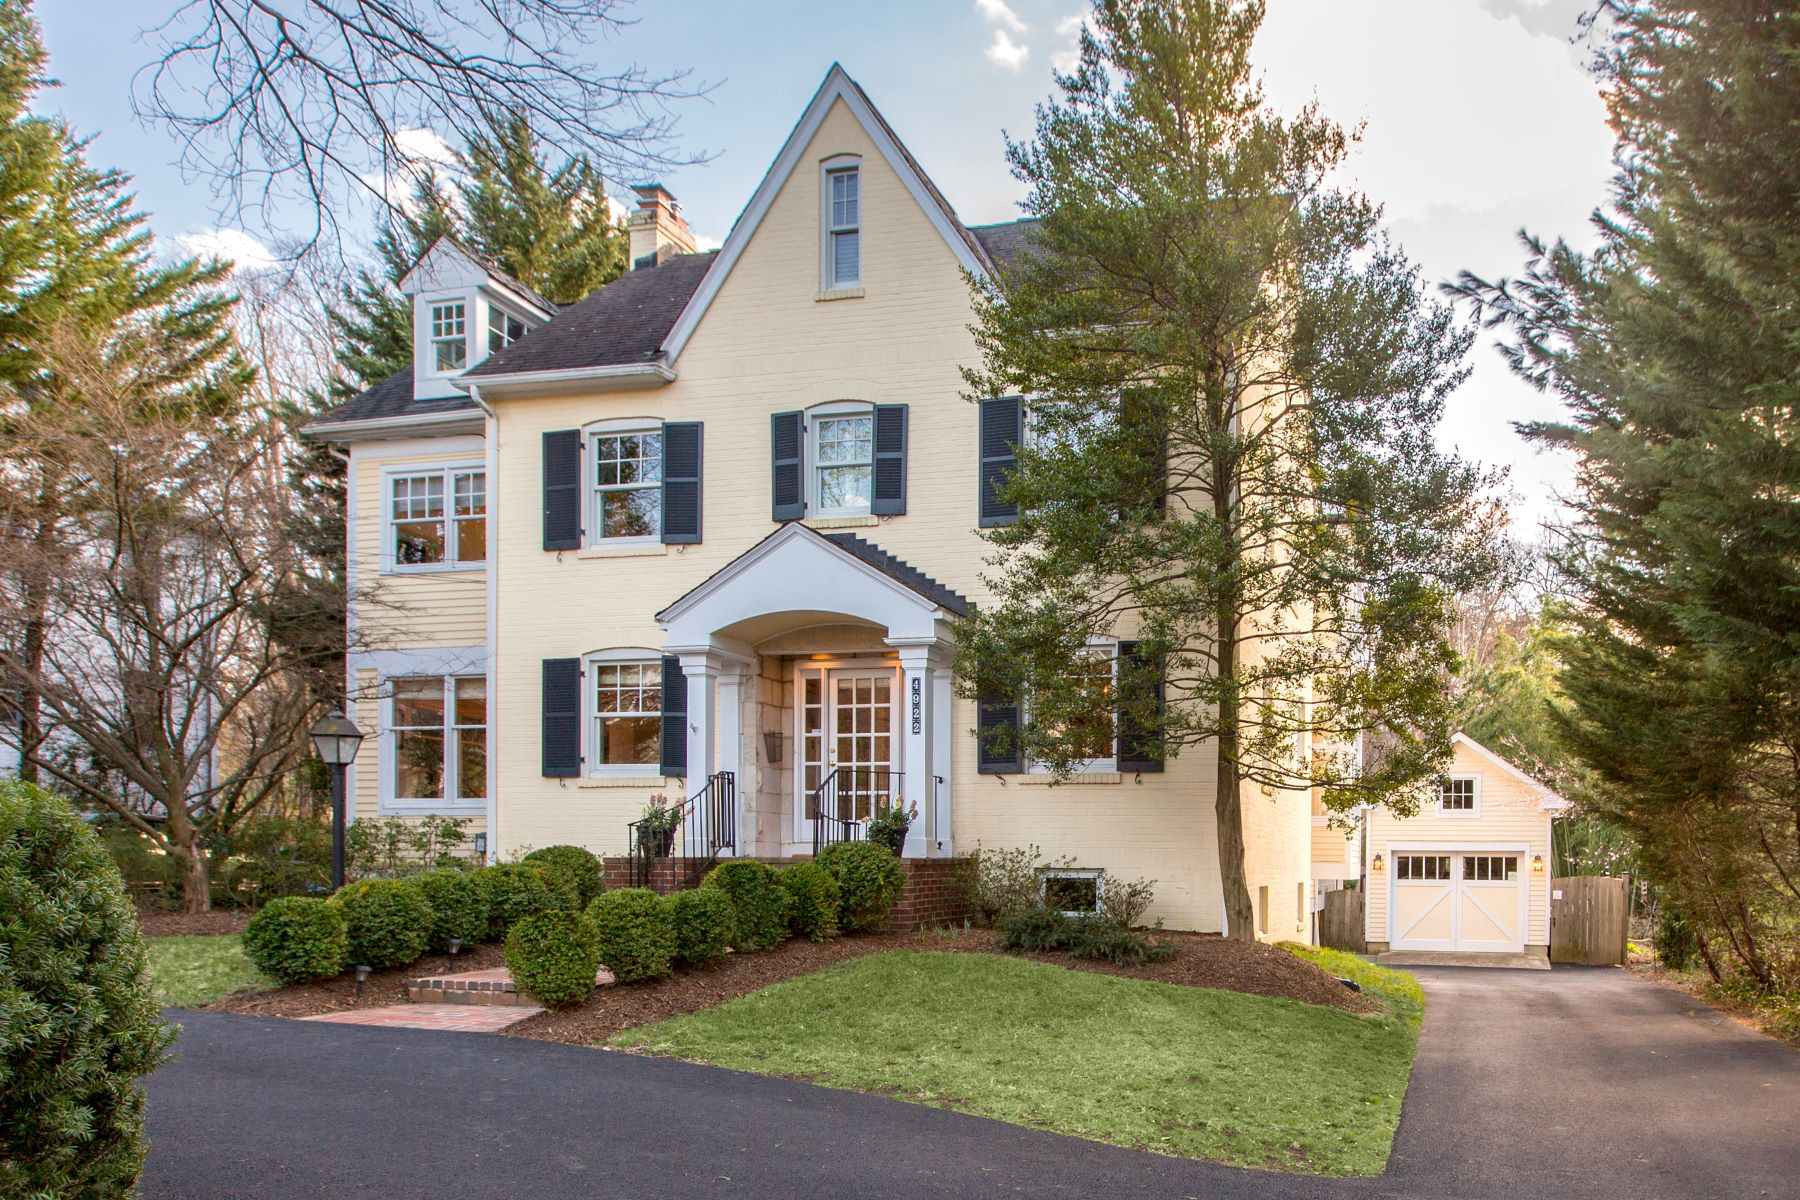 Single Family Home for Sale at 4922 Dorset Avenue, Chevy Chase Chevy Chase, Maryland, 20815 United States